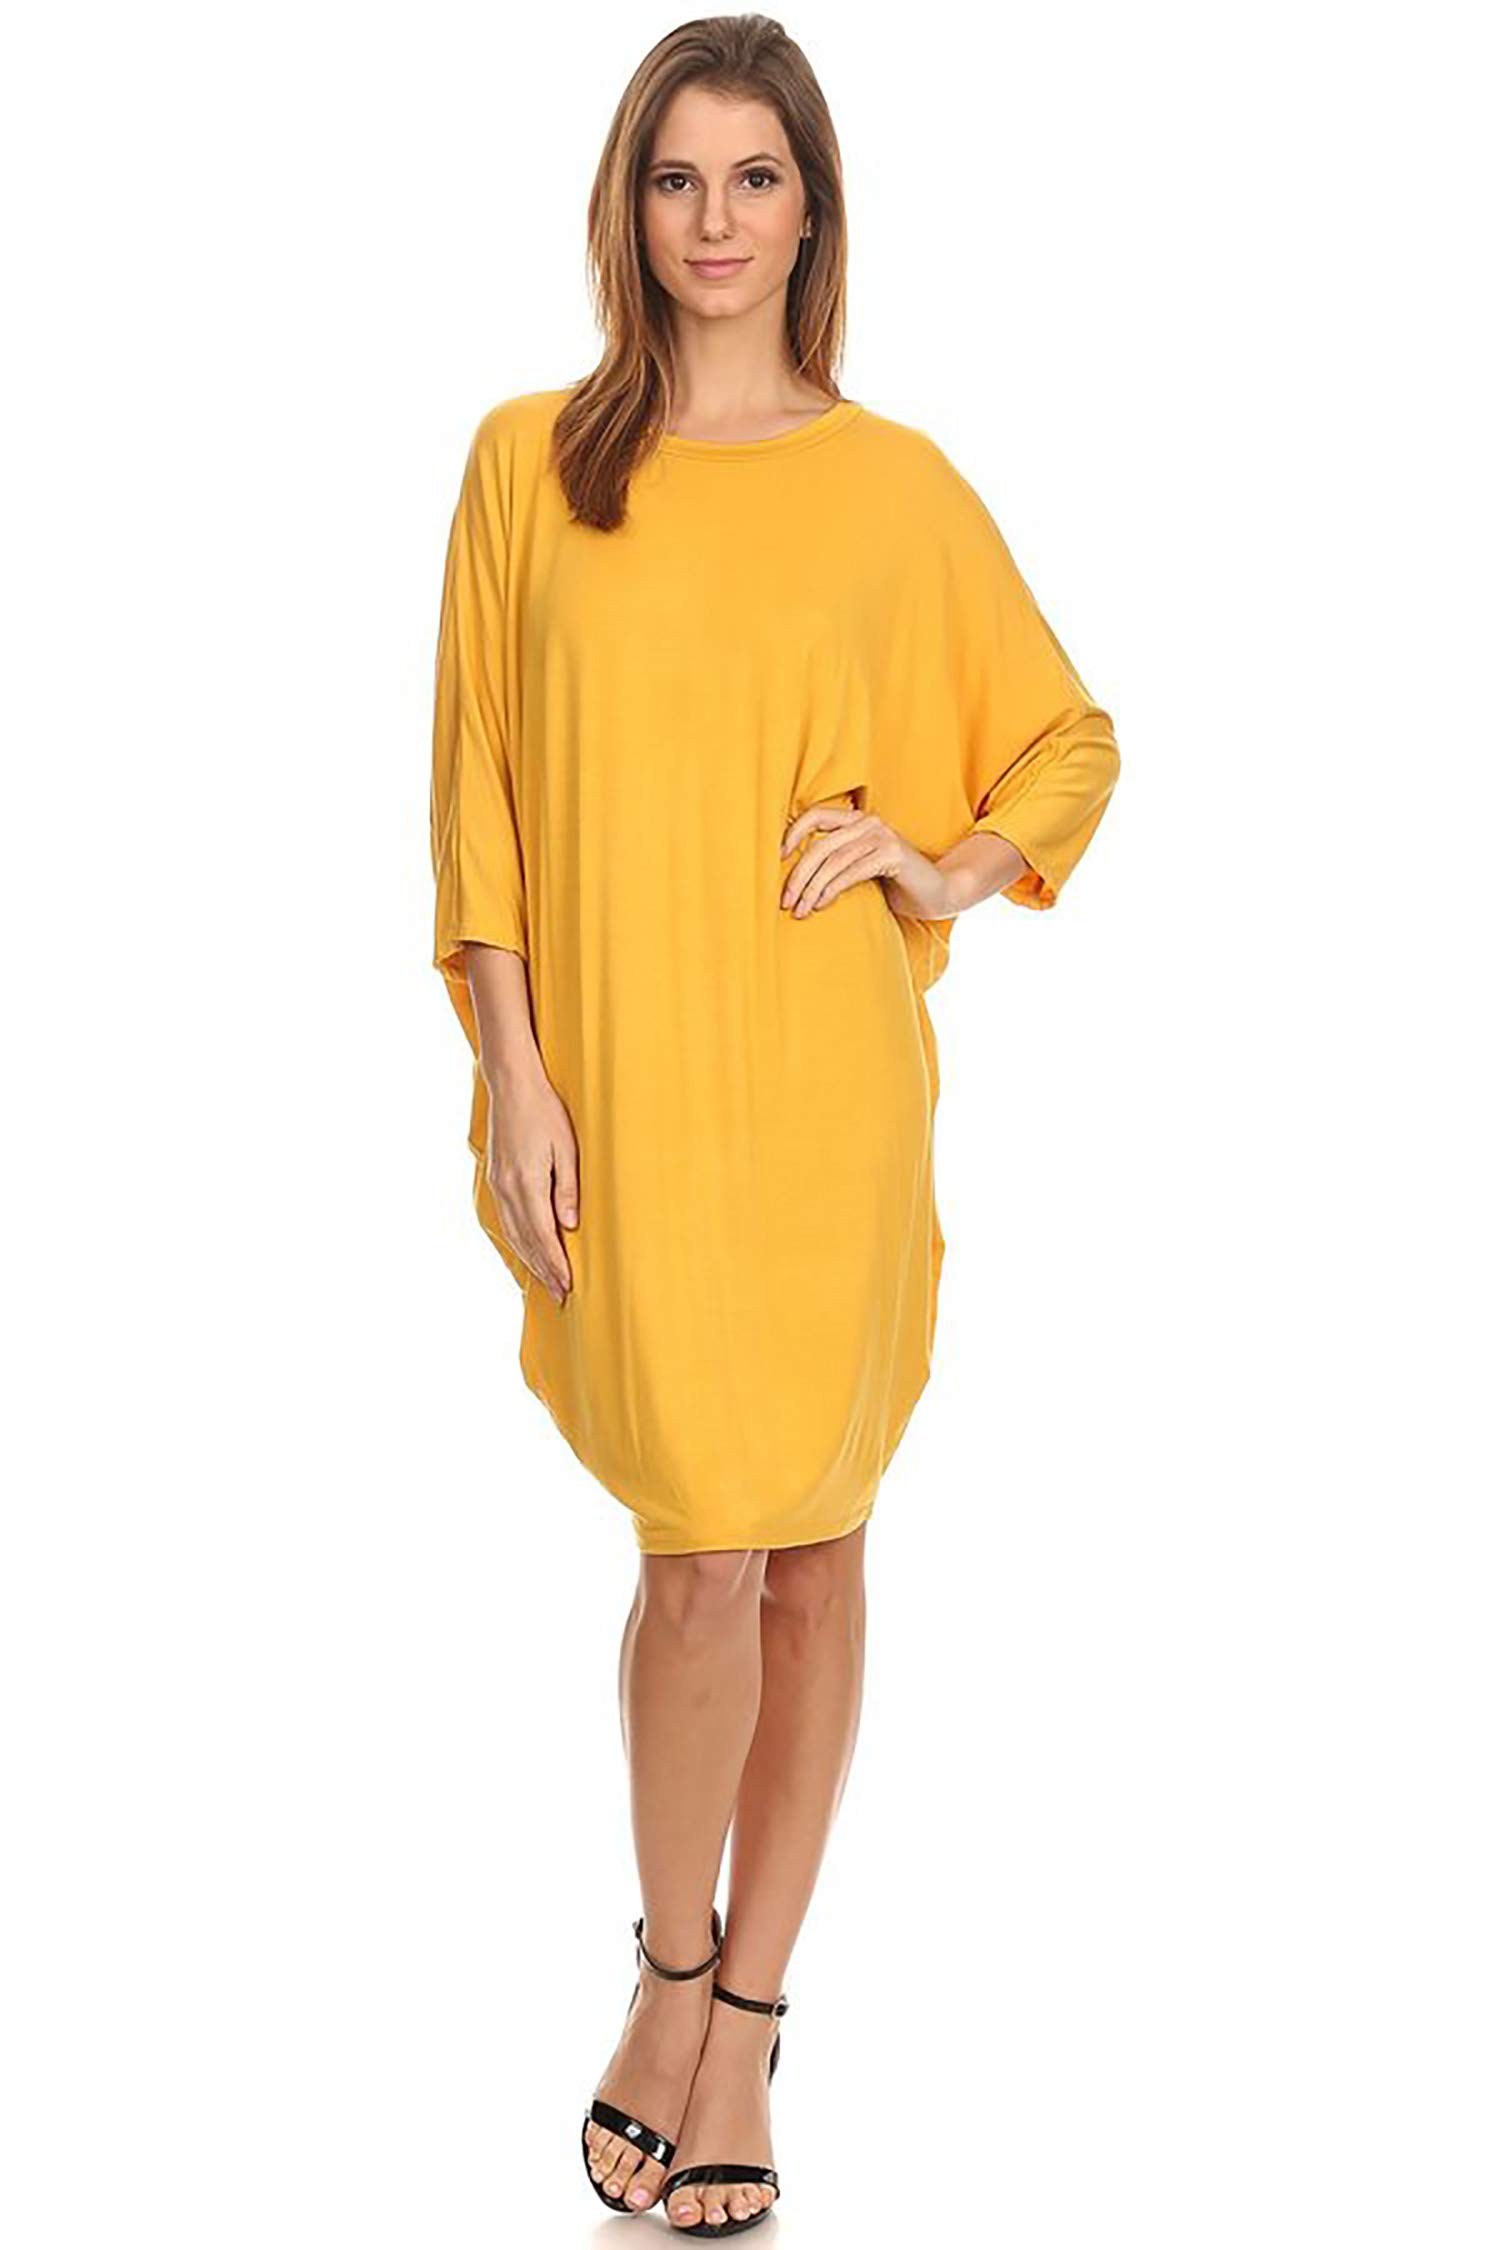 Available at Amazon: Women's Solid Casual Sexy Relax fit Dolman 3/4 Sleeve Side Draped Midi Dress/Made in USA